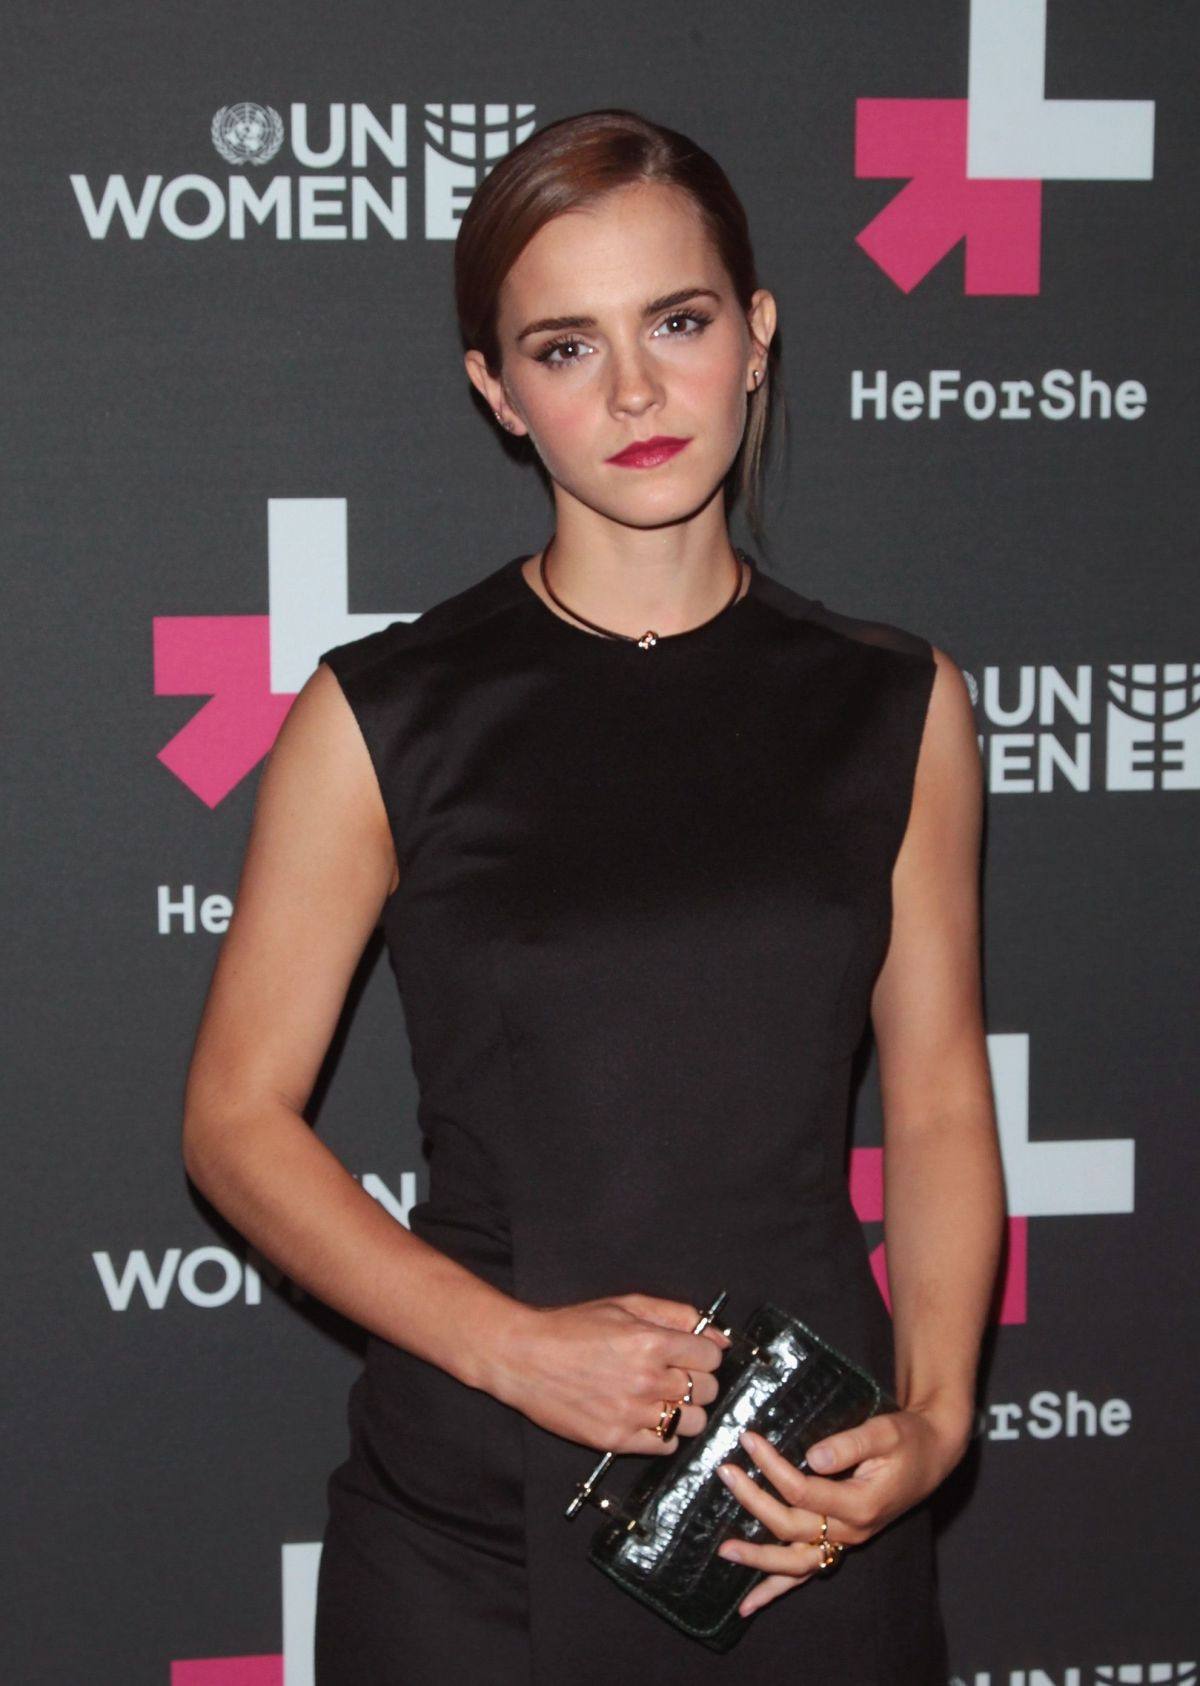 Umpolen – den Minuspol mit dem Pluspol vertauschen - Seite 18 Emma-watson-at-un-women-s-heforshe-vip-party-in-new-york_11